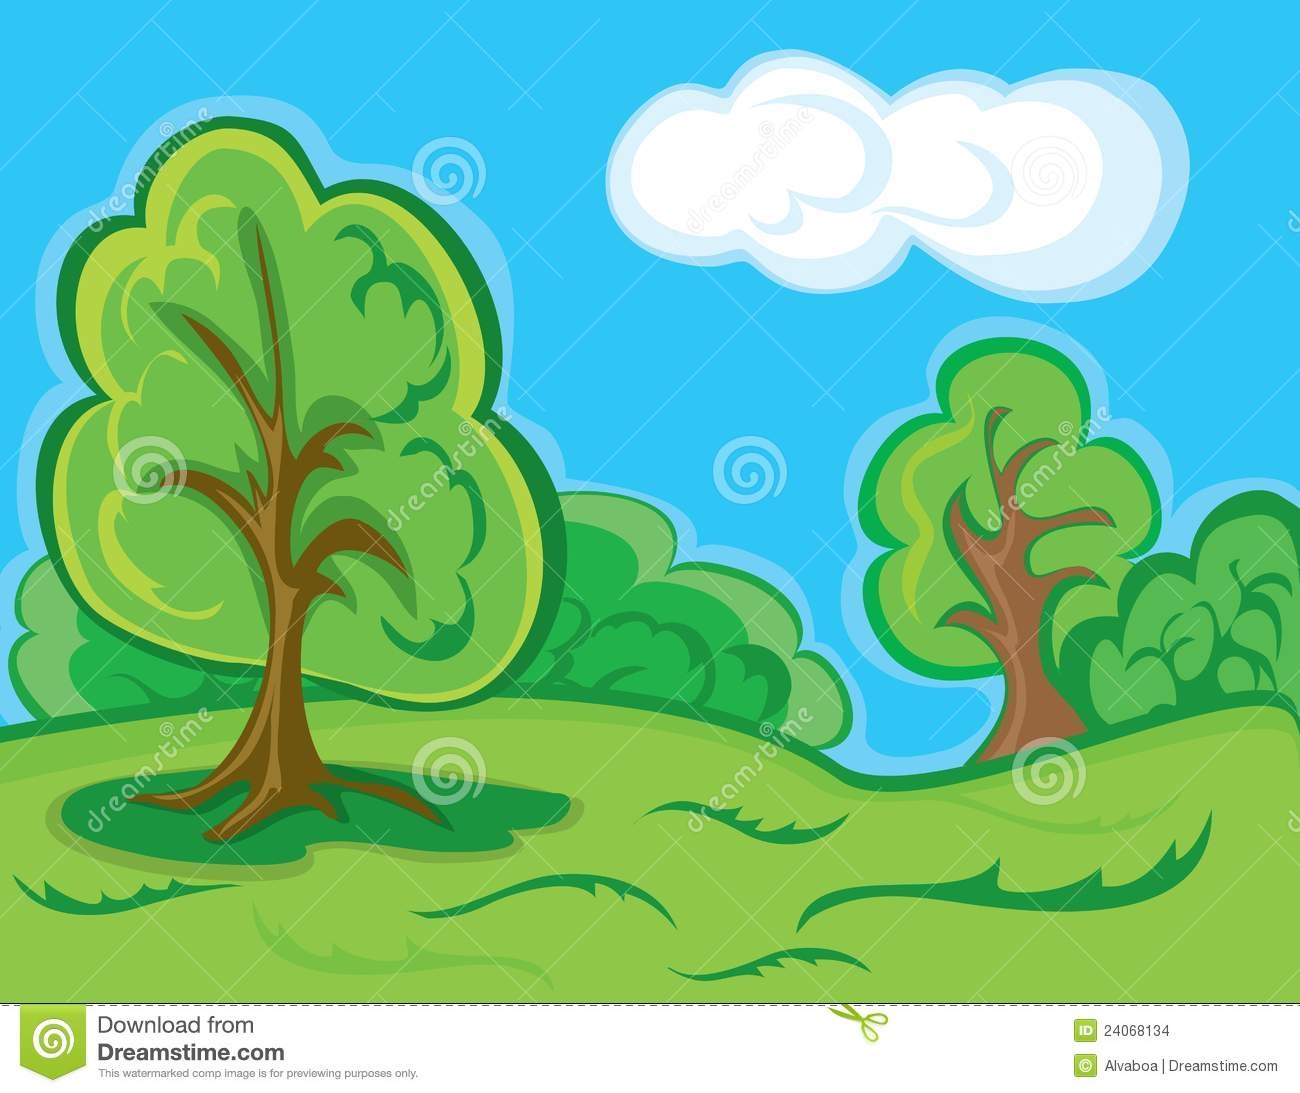 Nature Images 2mb: Cartoon Forest Landscape Stock Vector. Image Of Nature